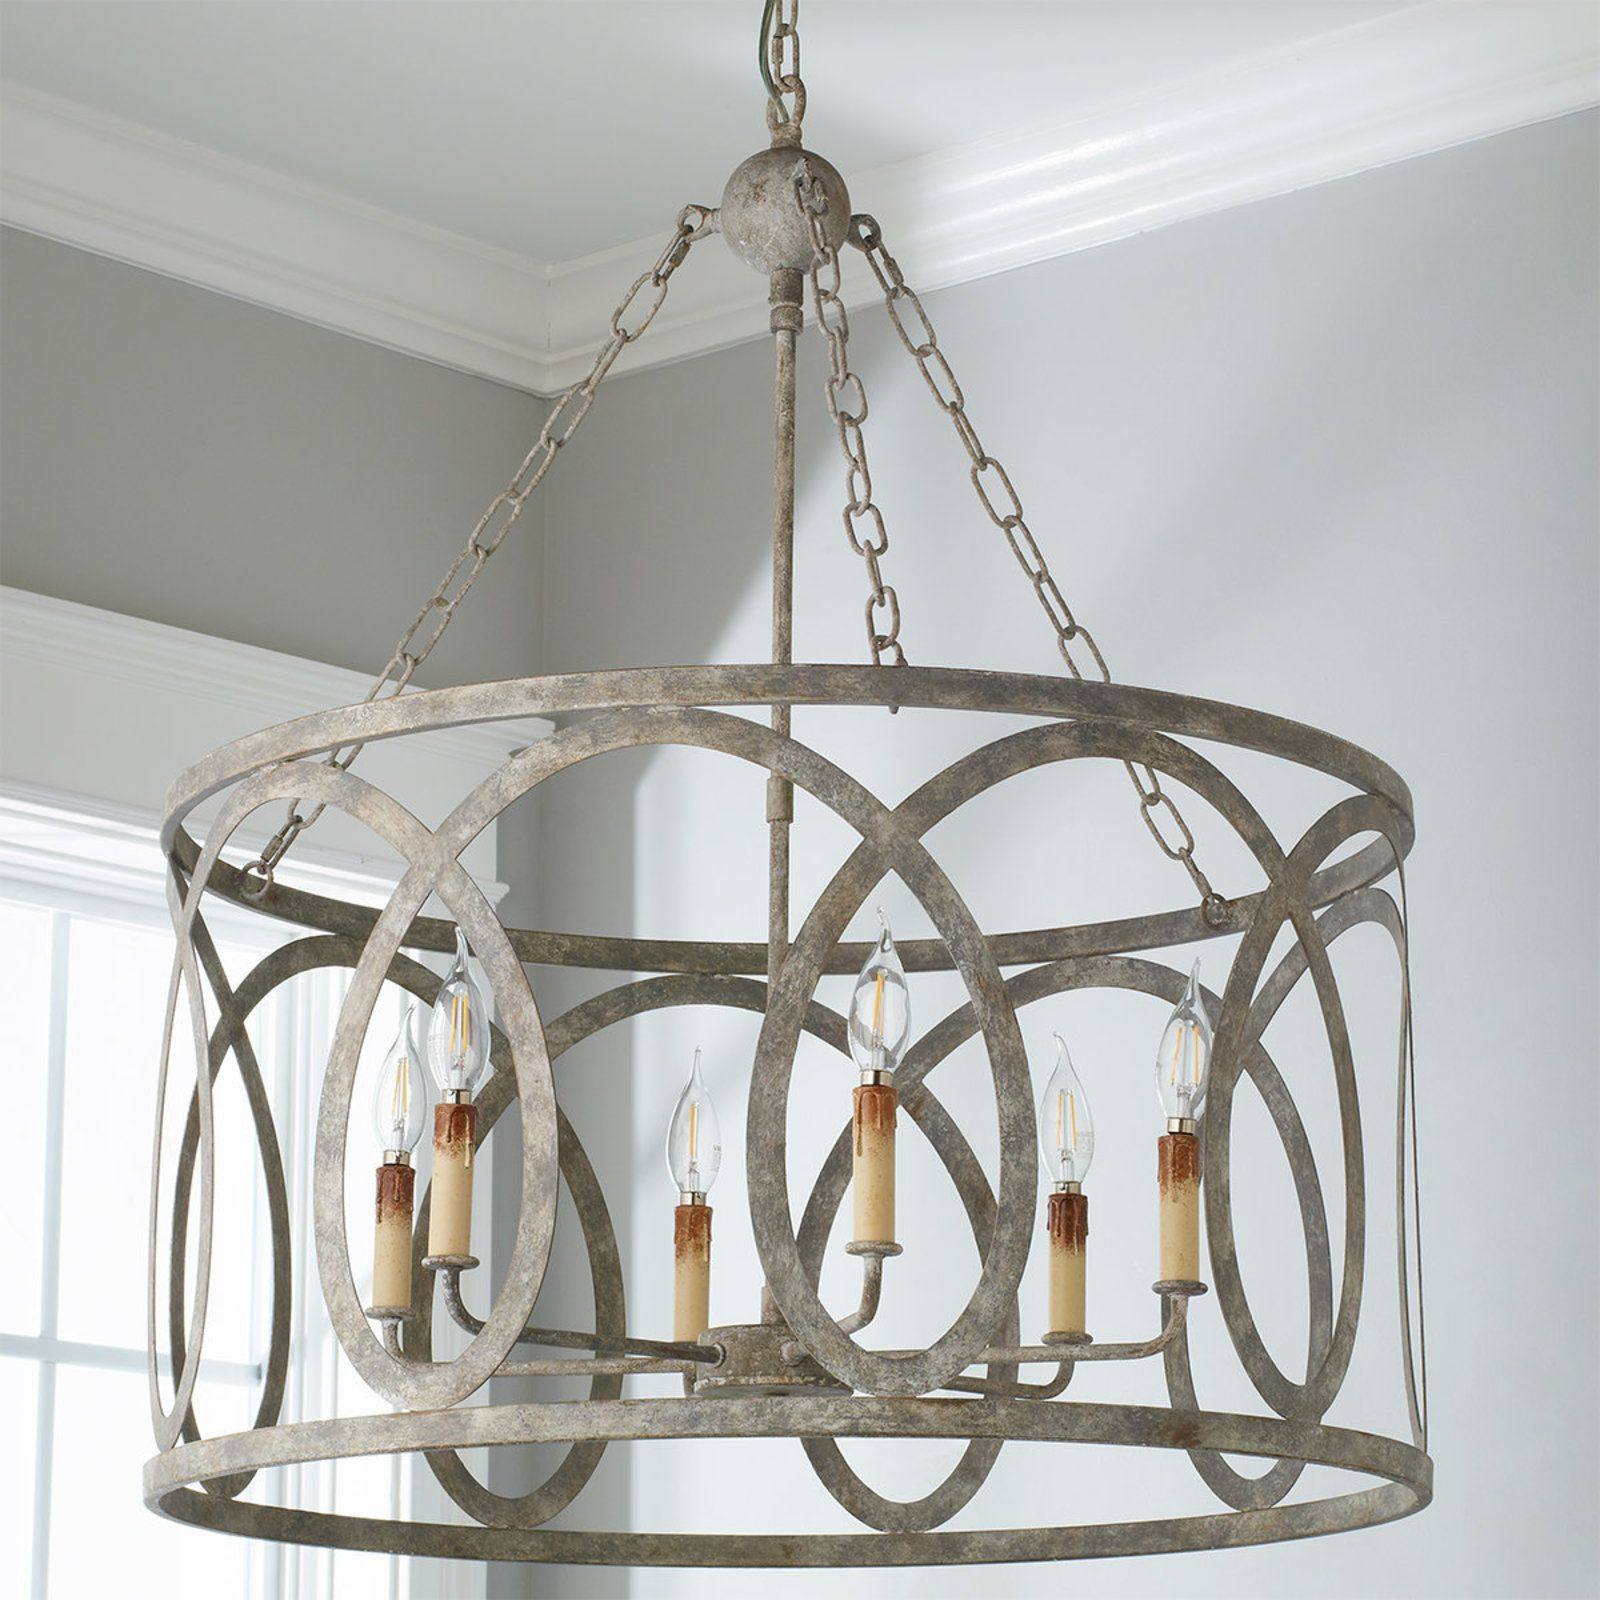 Circle Cage Candles Chandelier In 2019 Dining Room Light